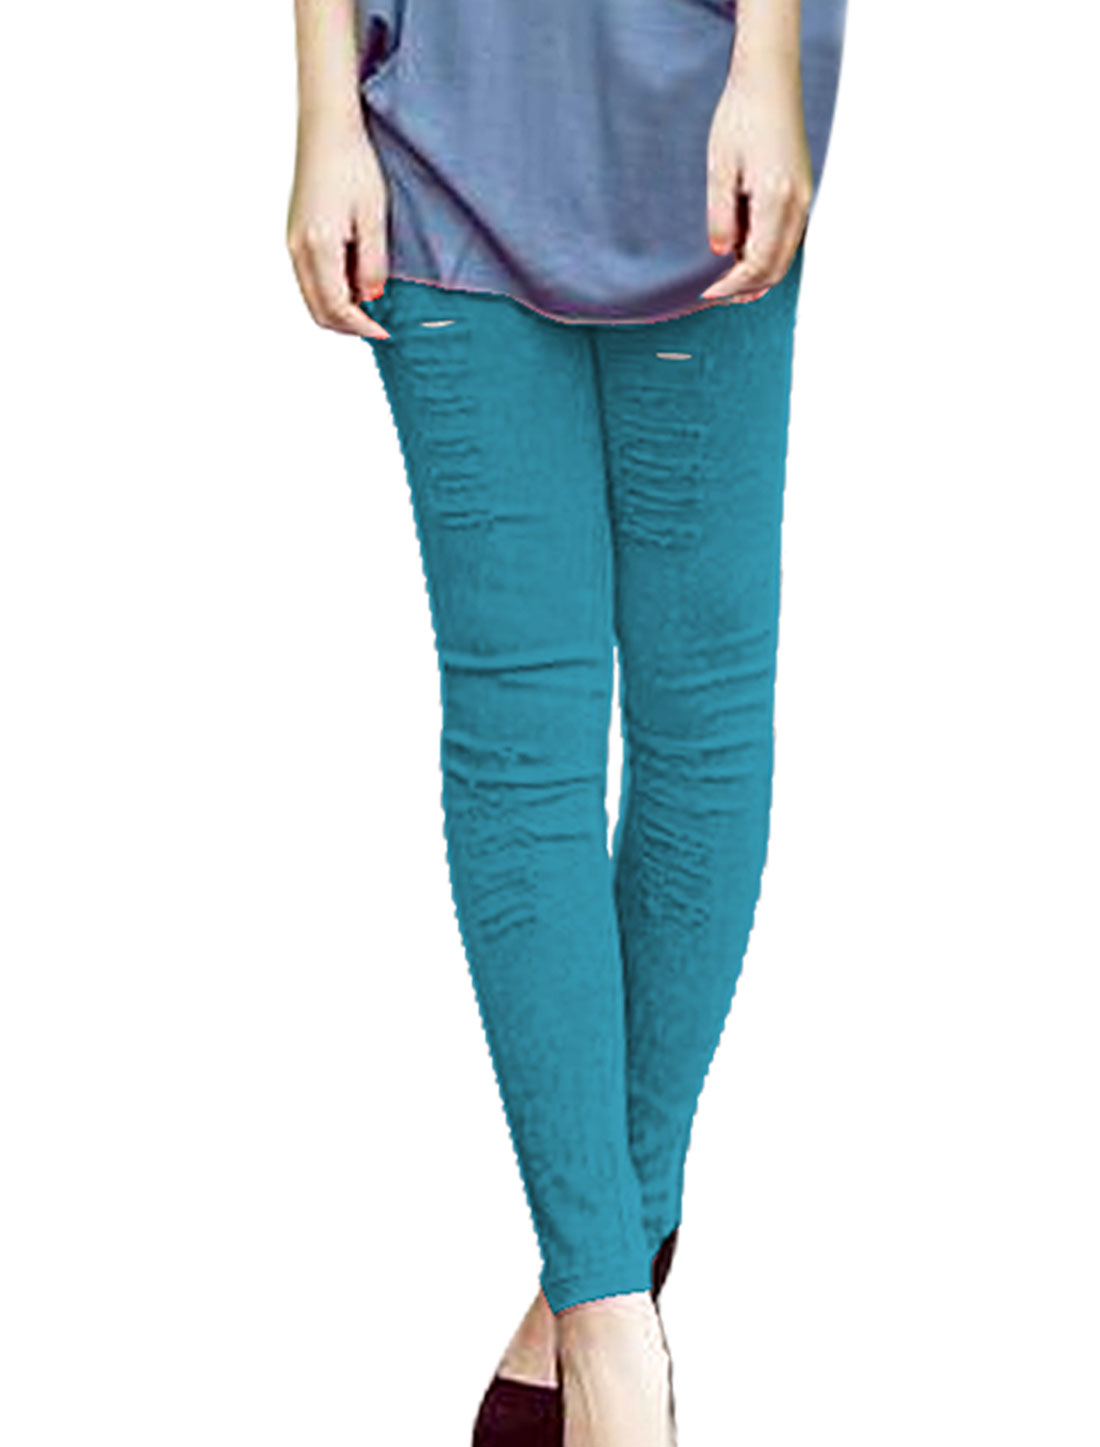 Ladies Elastic Waist Destroyed Washed Skinny Jeans Turquoise XS